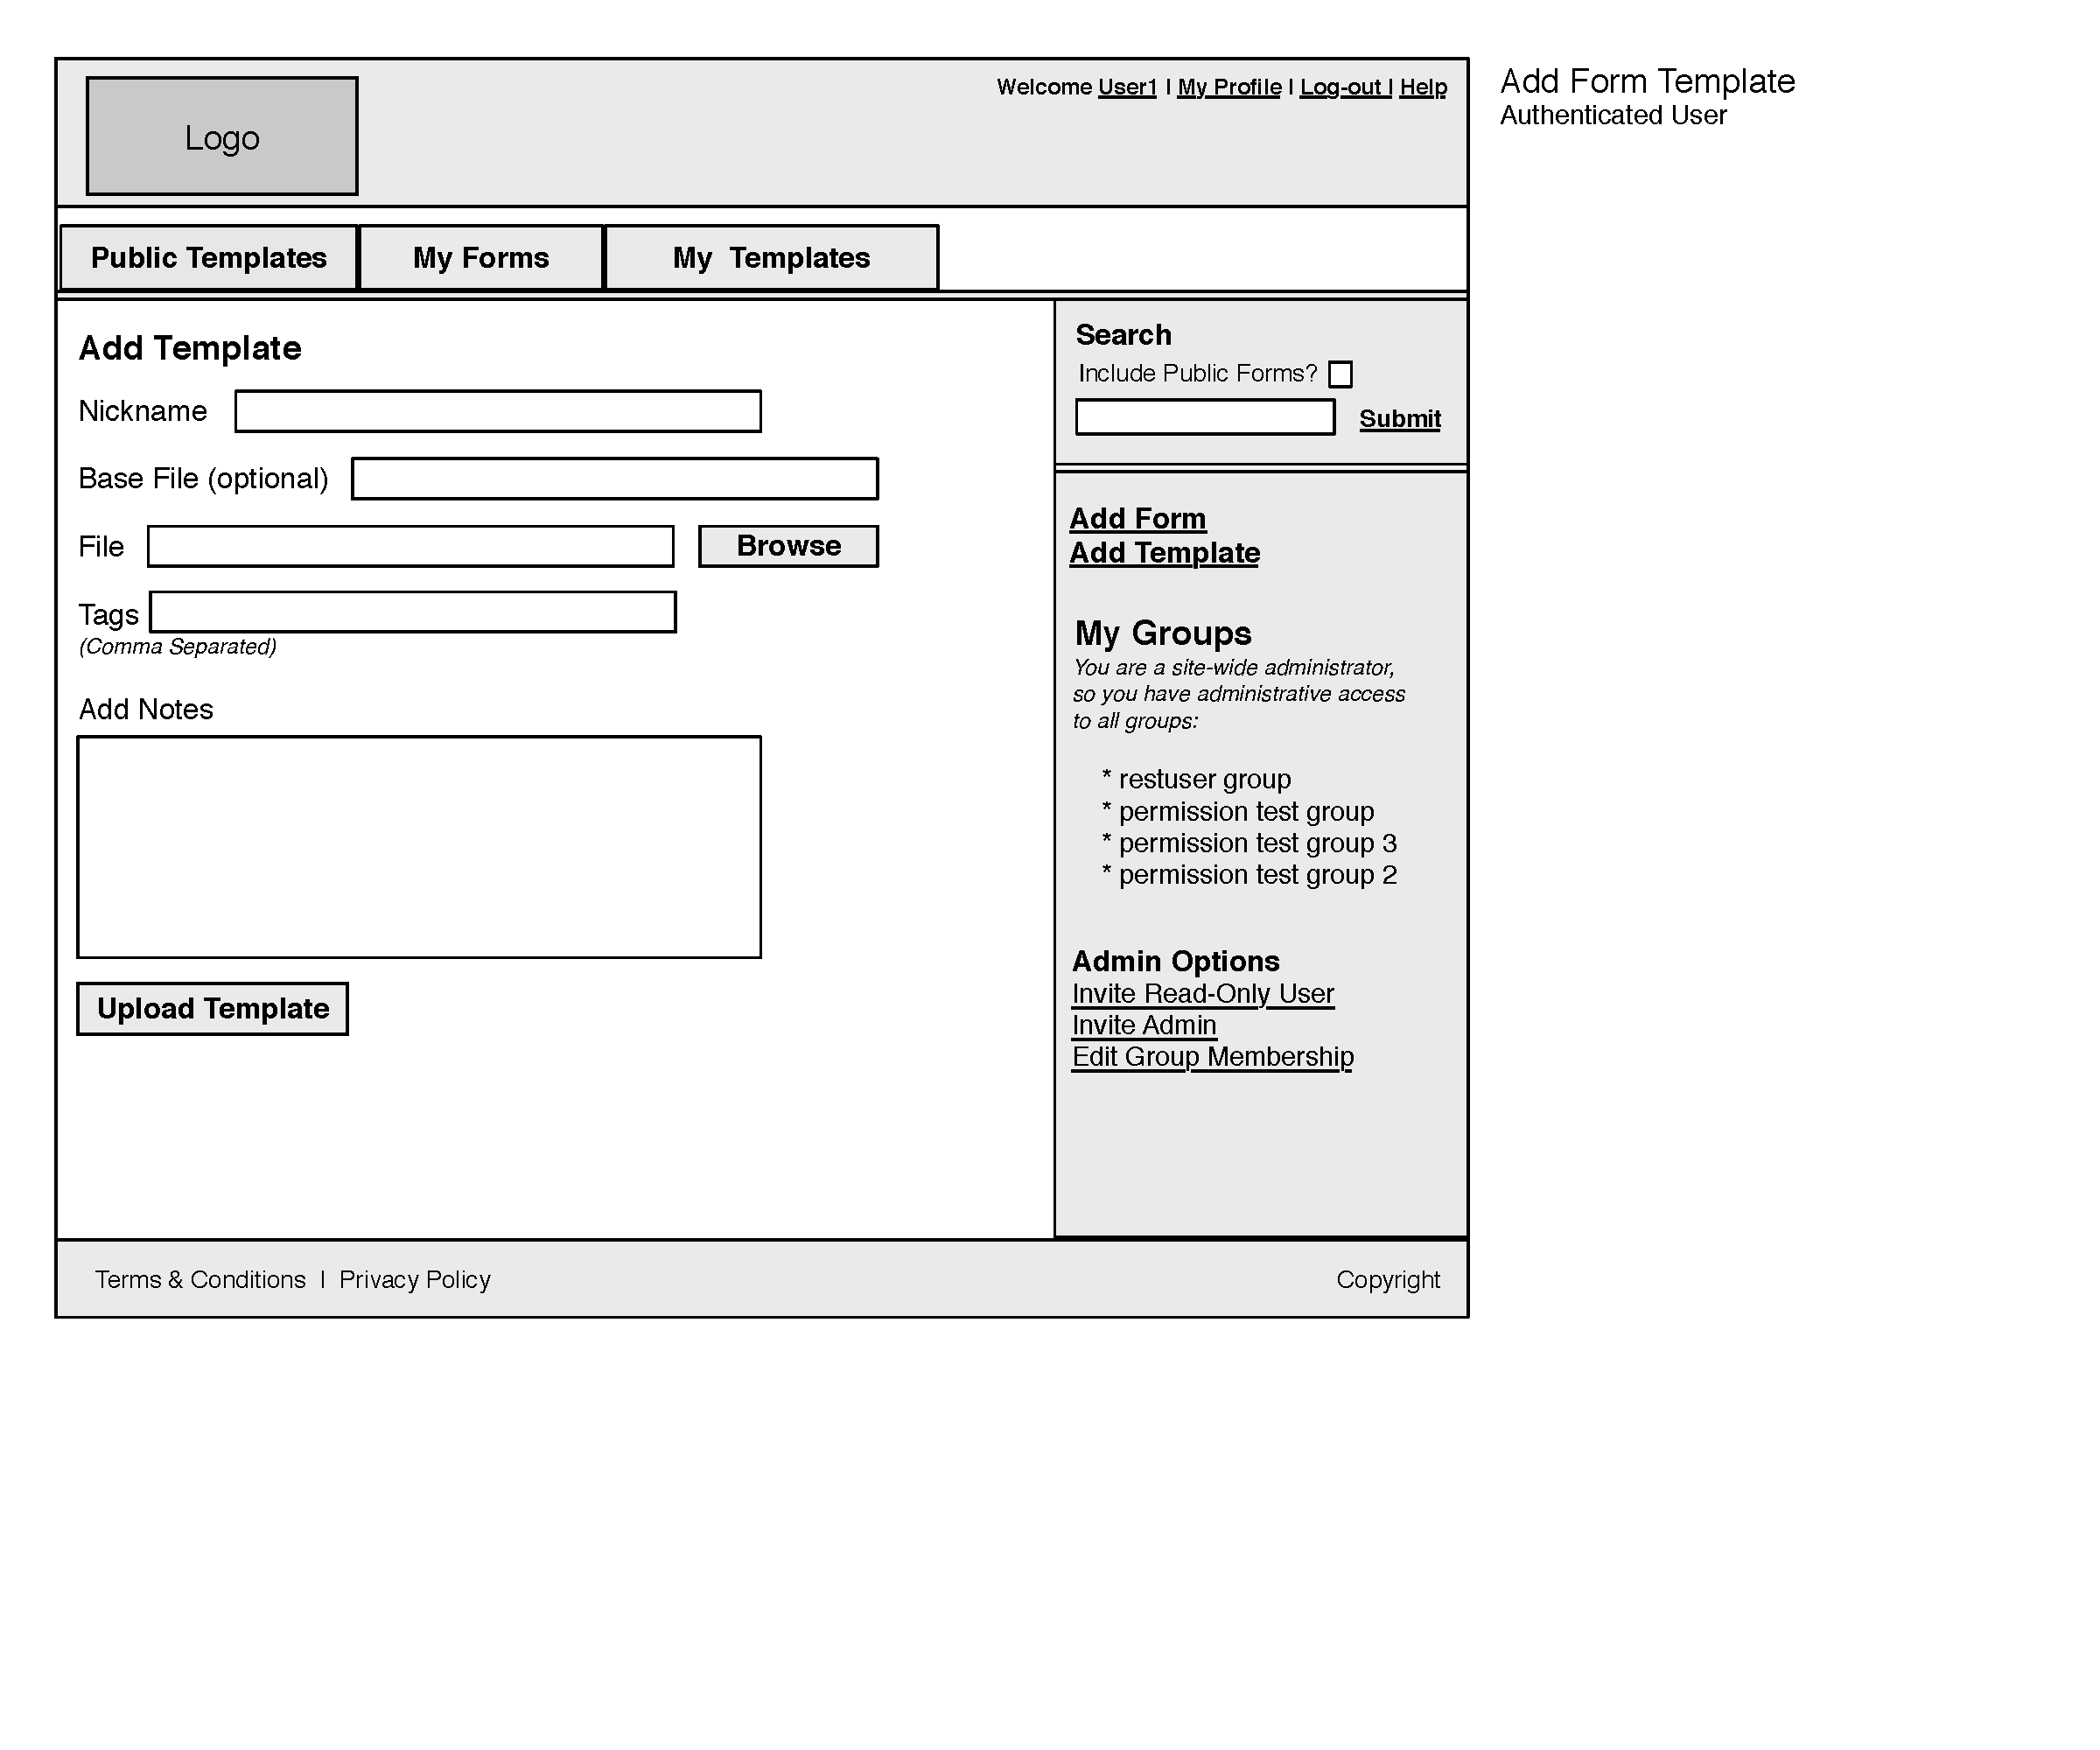 ricoh-ia-sitemap-wireframes_Page_10.png